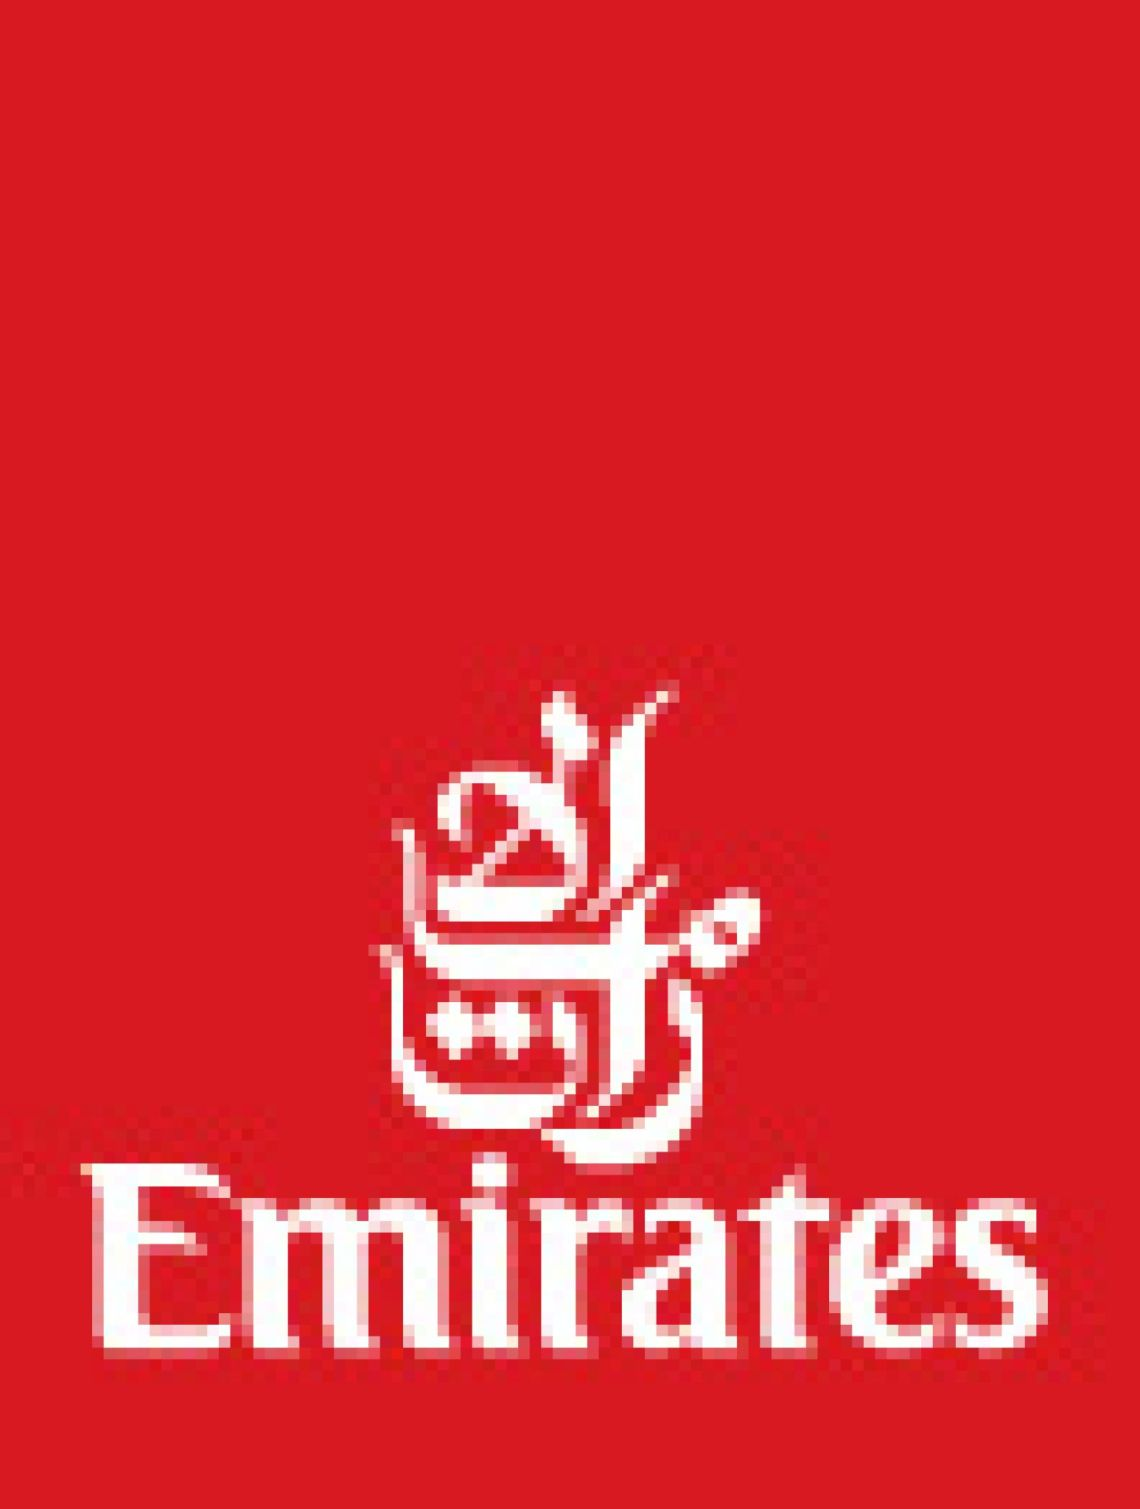 Find flights to Emirates destinations | Emirates